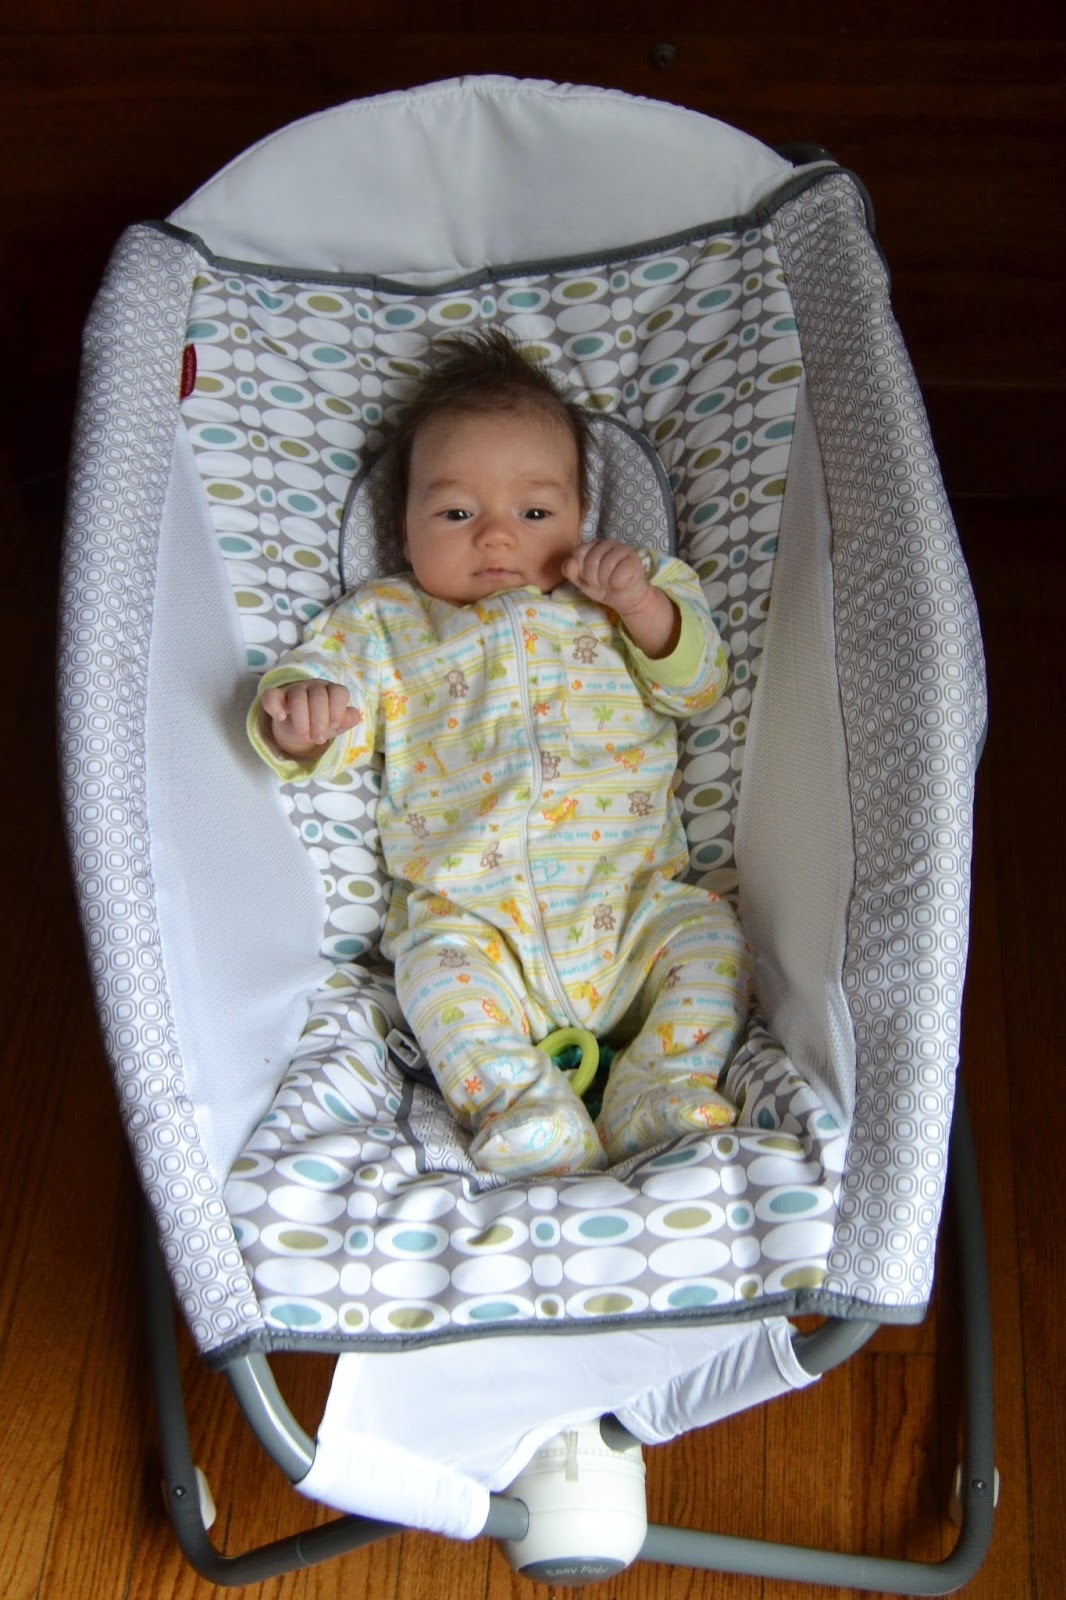 Fisher Price Rock N Play Sleeper Review The